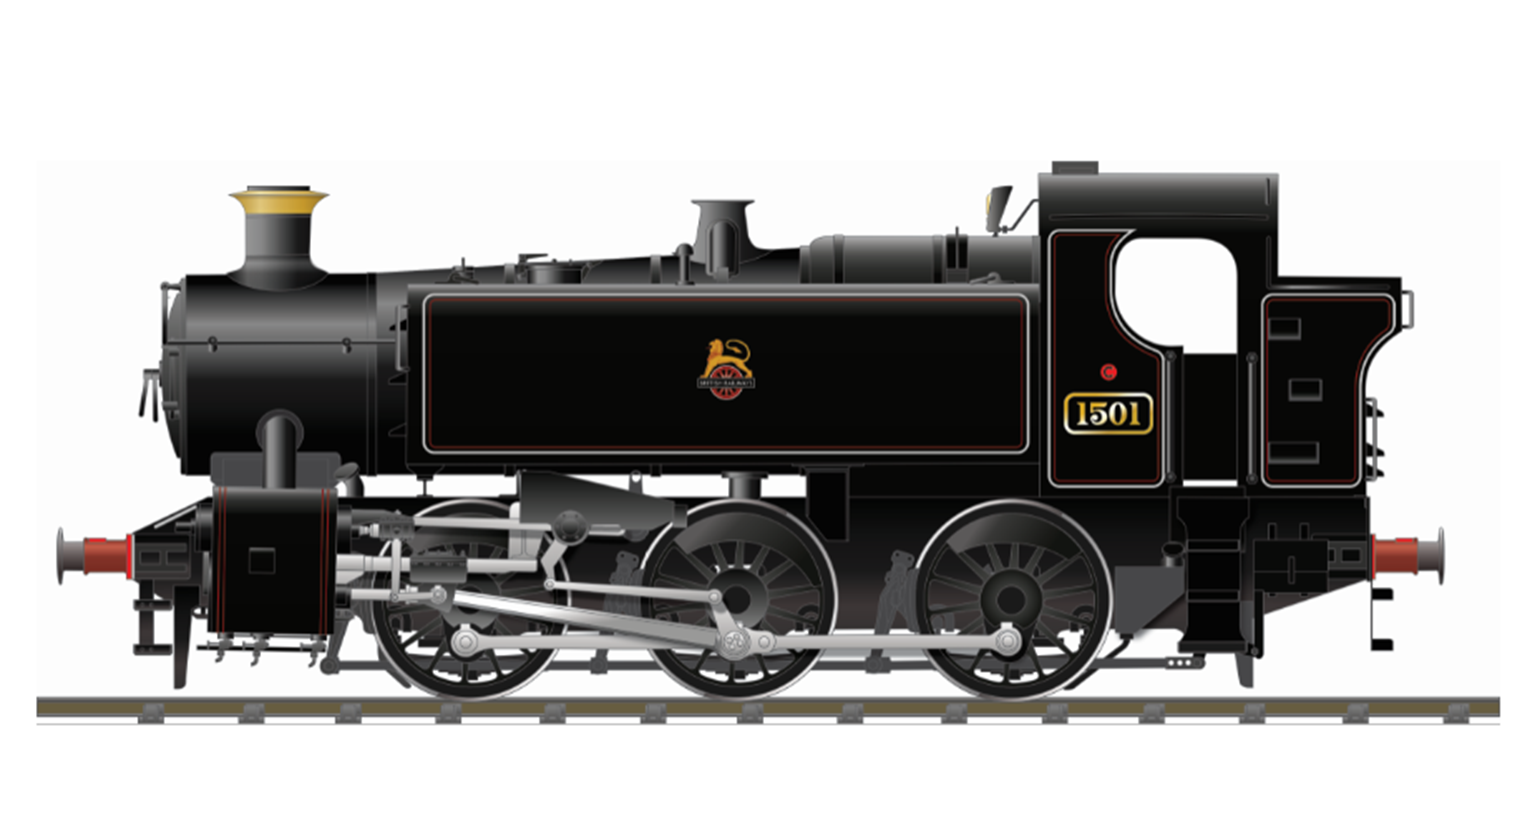 BR 15xx Pannier Tank - 1501 Lined Black Early Crest (as preserved) - DCC SOUND